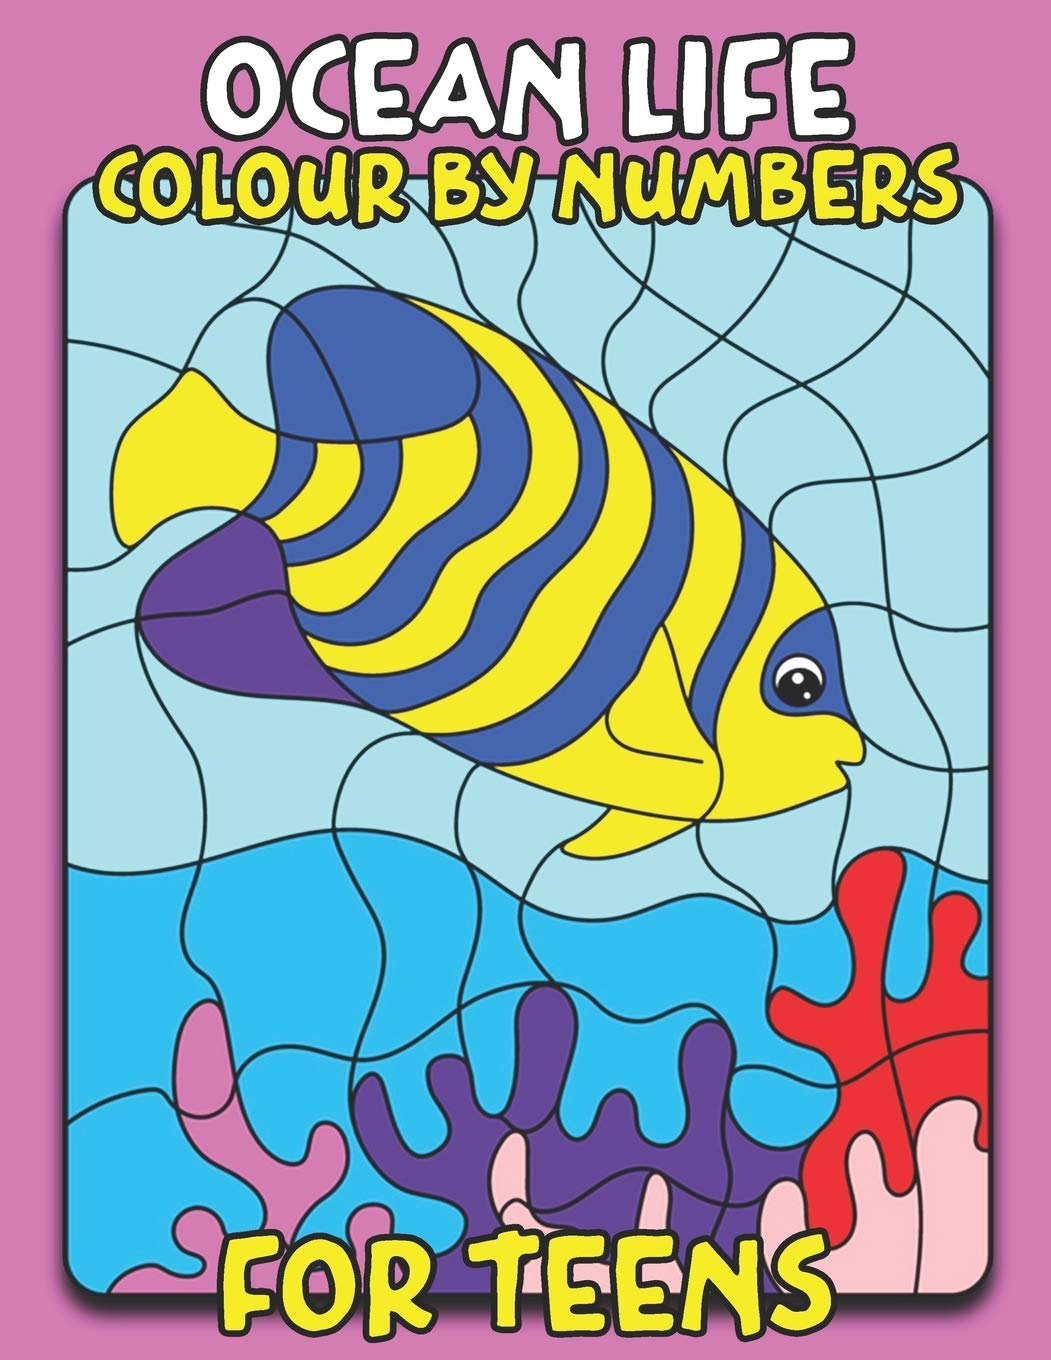 Ocean Life Colour By Number For Teens Sea Animal Coloring Book Great Coloring Pages For Teens Press House Coloring 9781670955951 Amazon Com Books